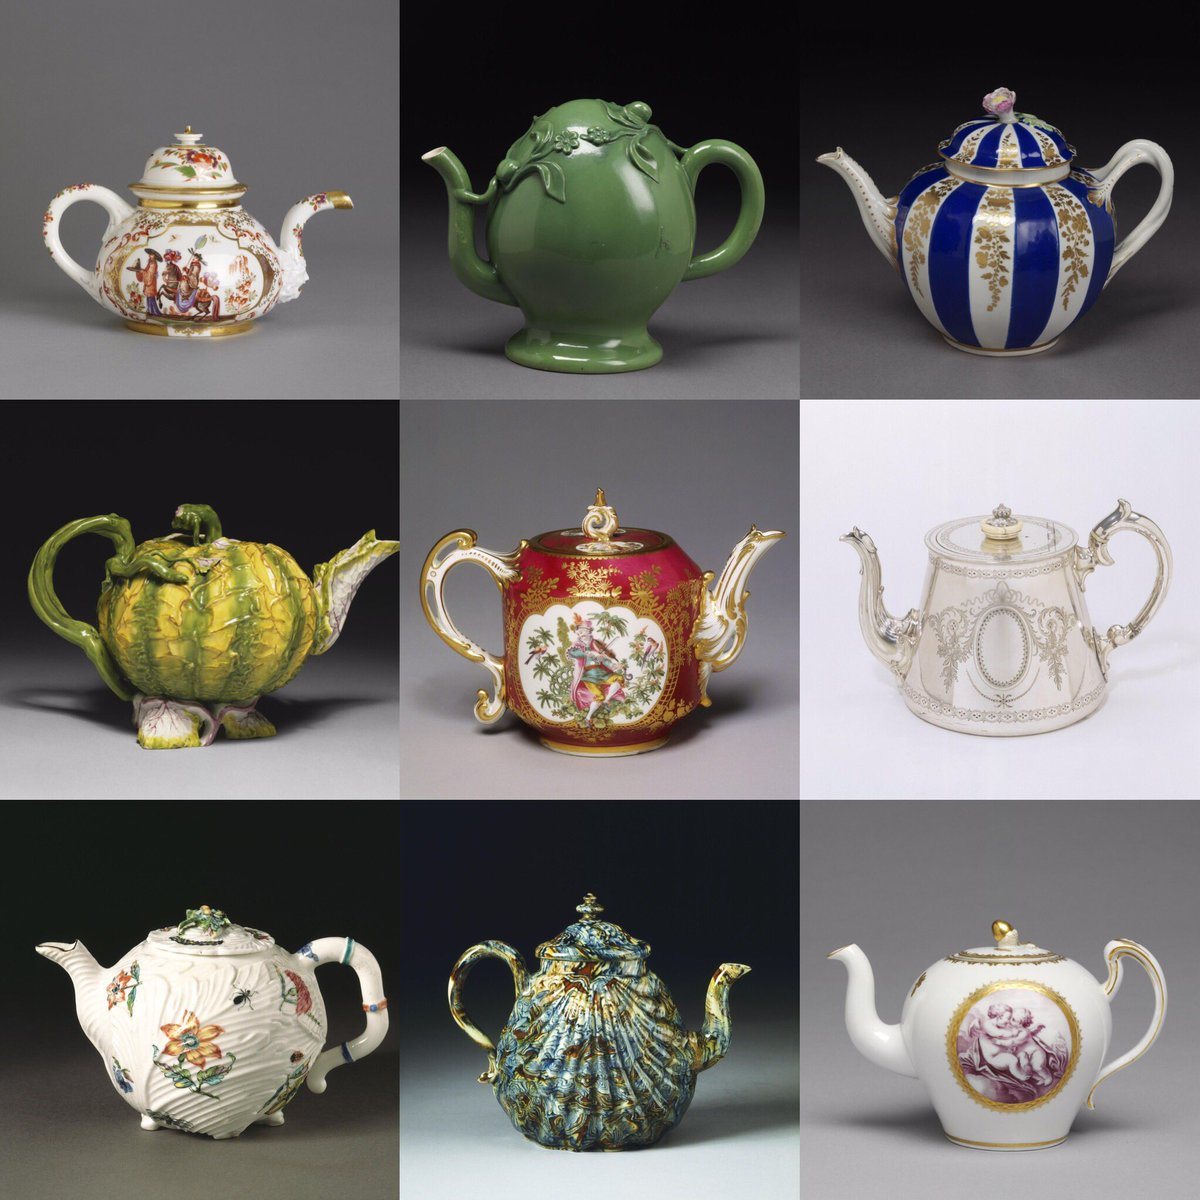 Time for tea? For #nationalteaday we have featured 9 teapots on display in our galleries. Can you spot them all next time you visit? <br>http://pic.twitter.com/51Vchk7AmR